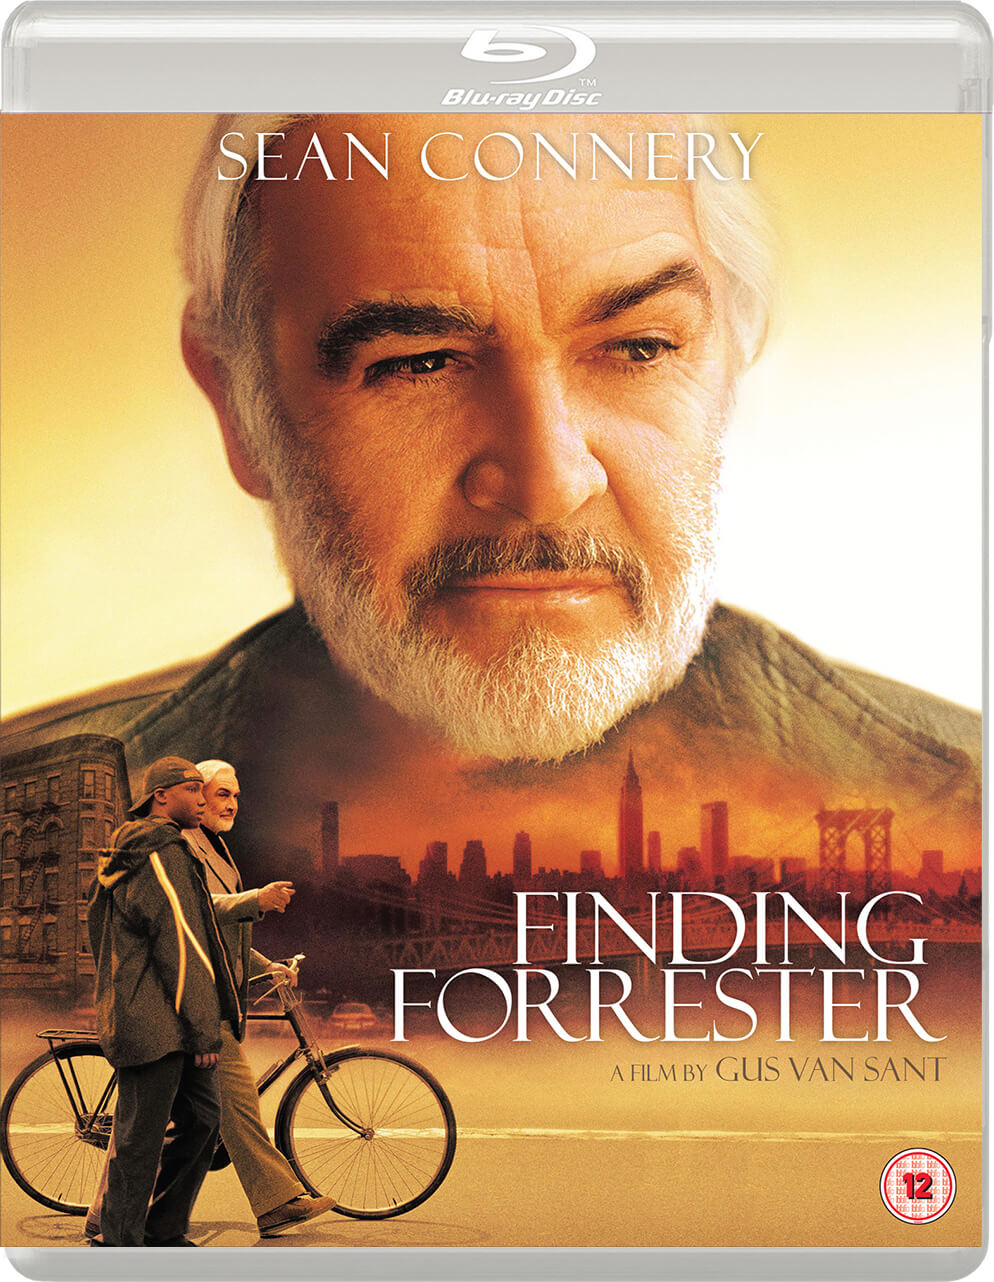 Finding Forrester - Dual Format (Includes DVD)